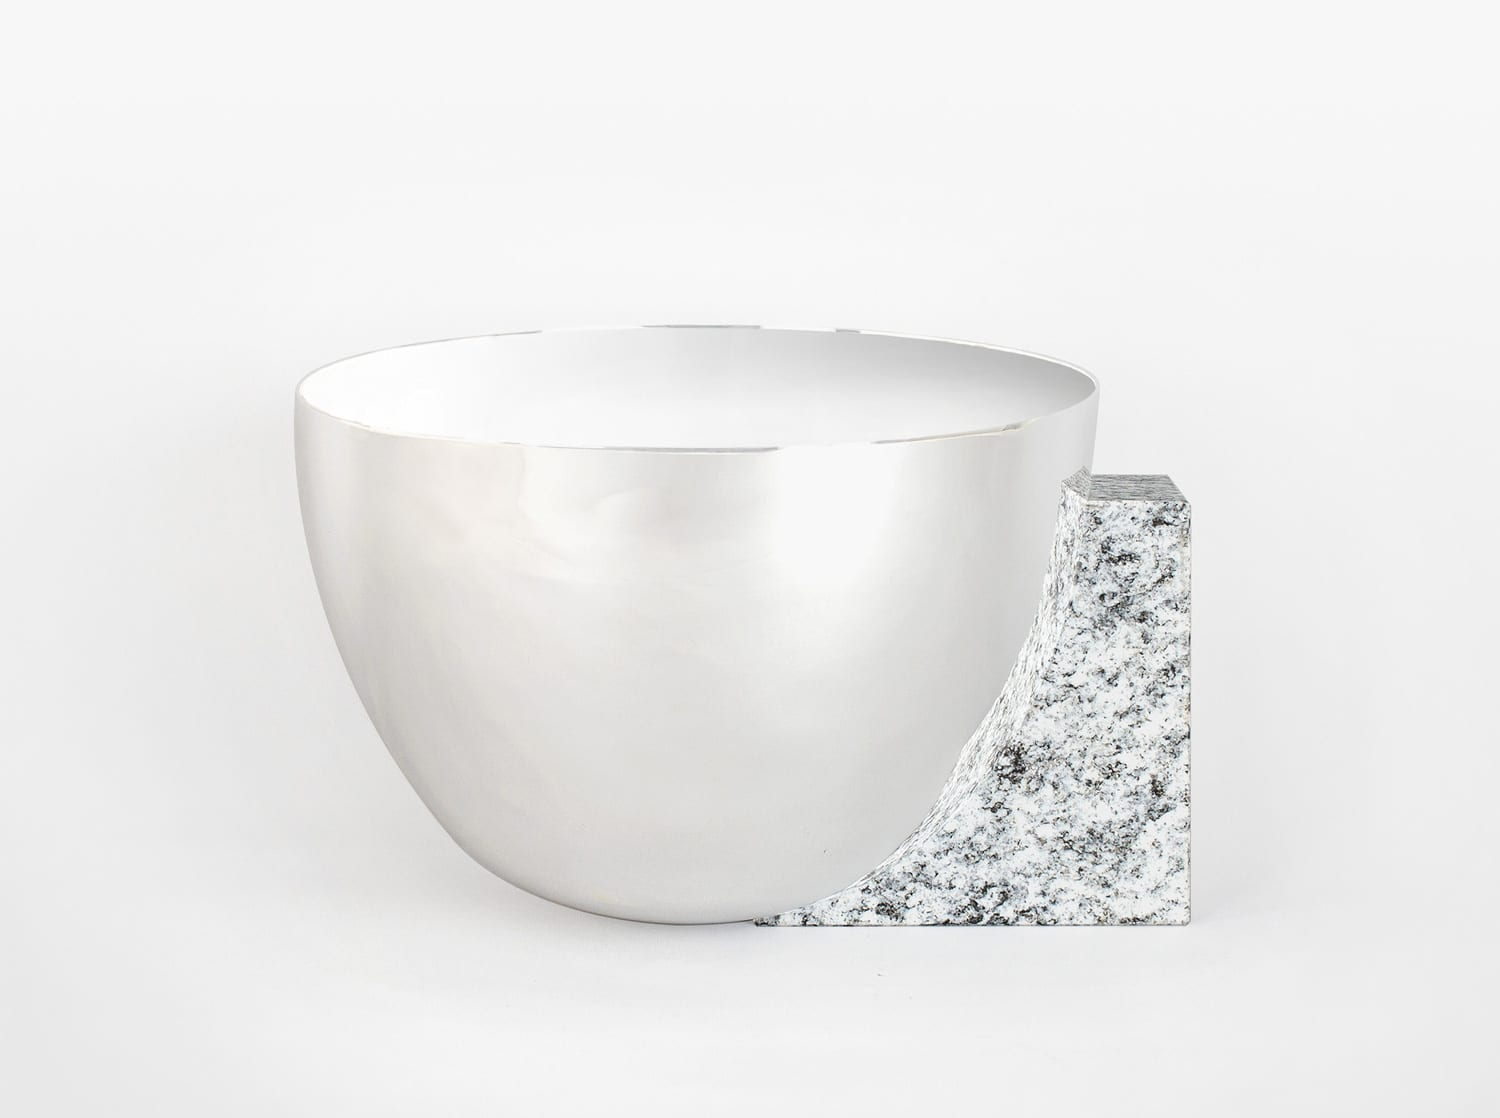 Clivage Round Bowl by Jinsik Kim | Yellowtrace